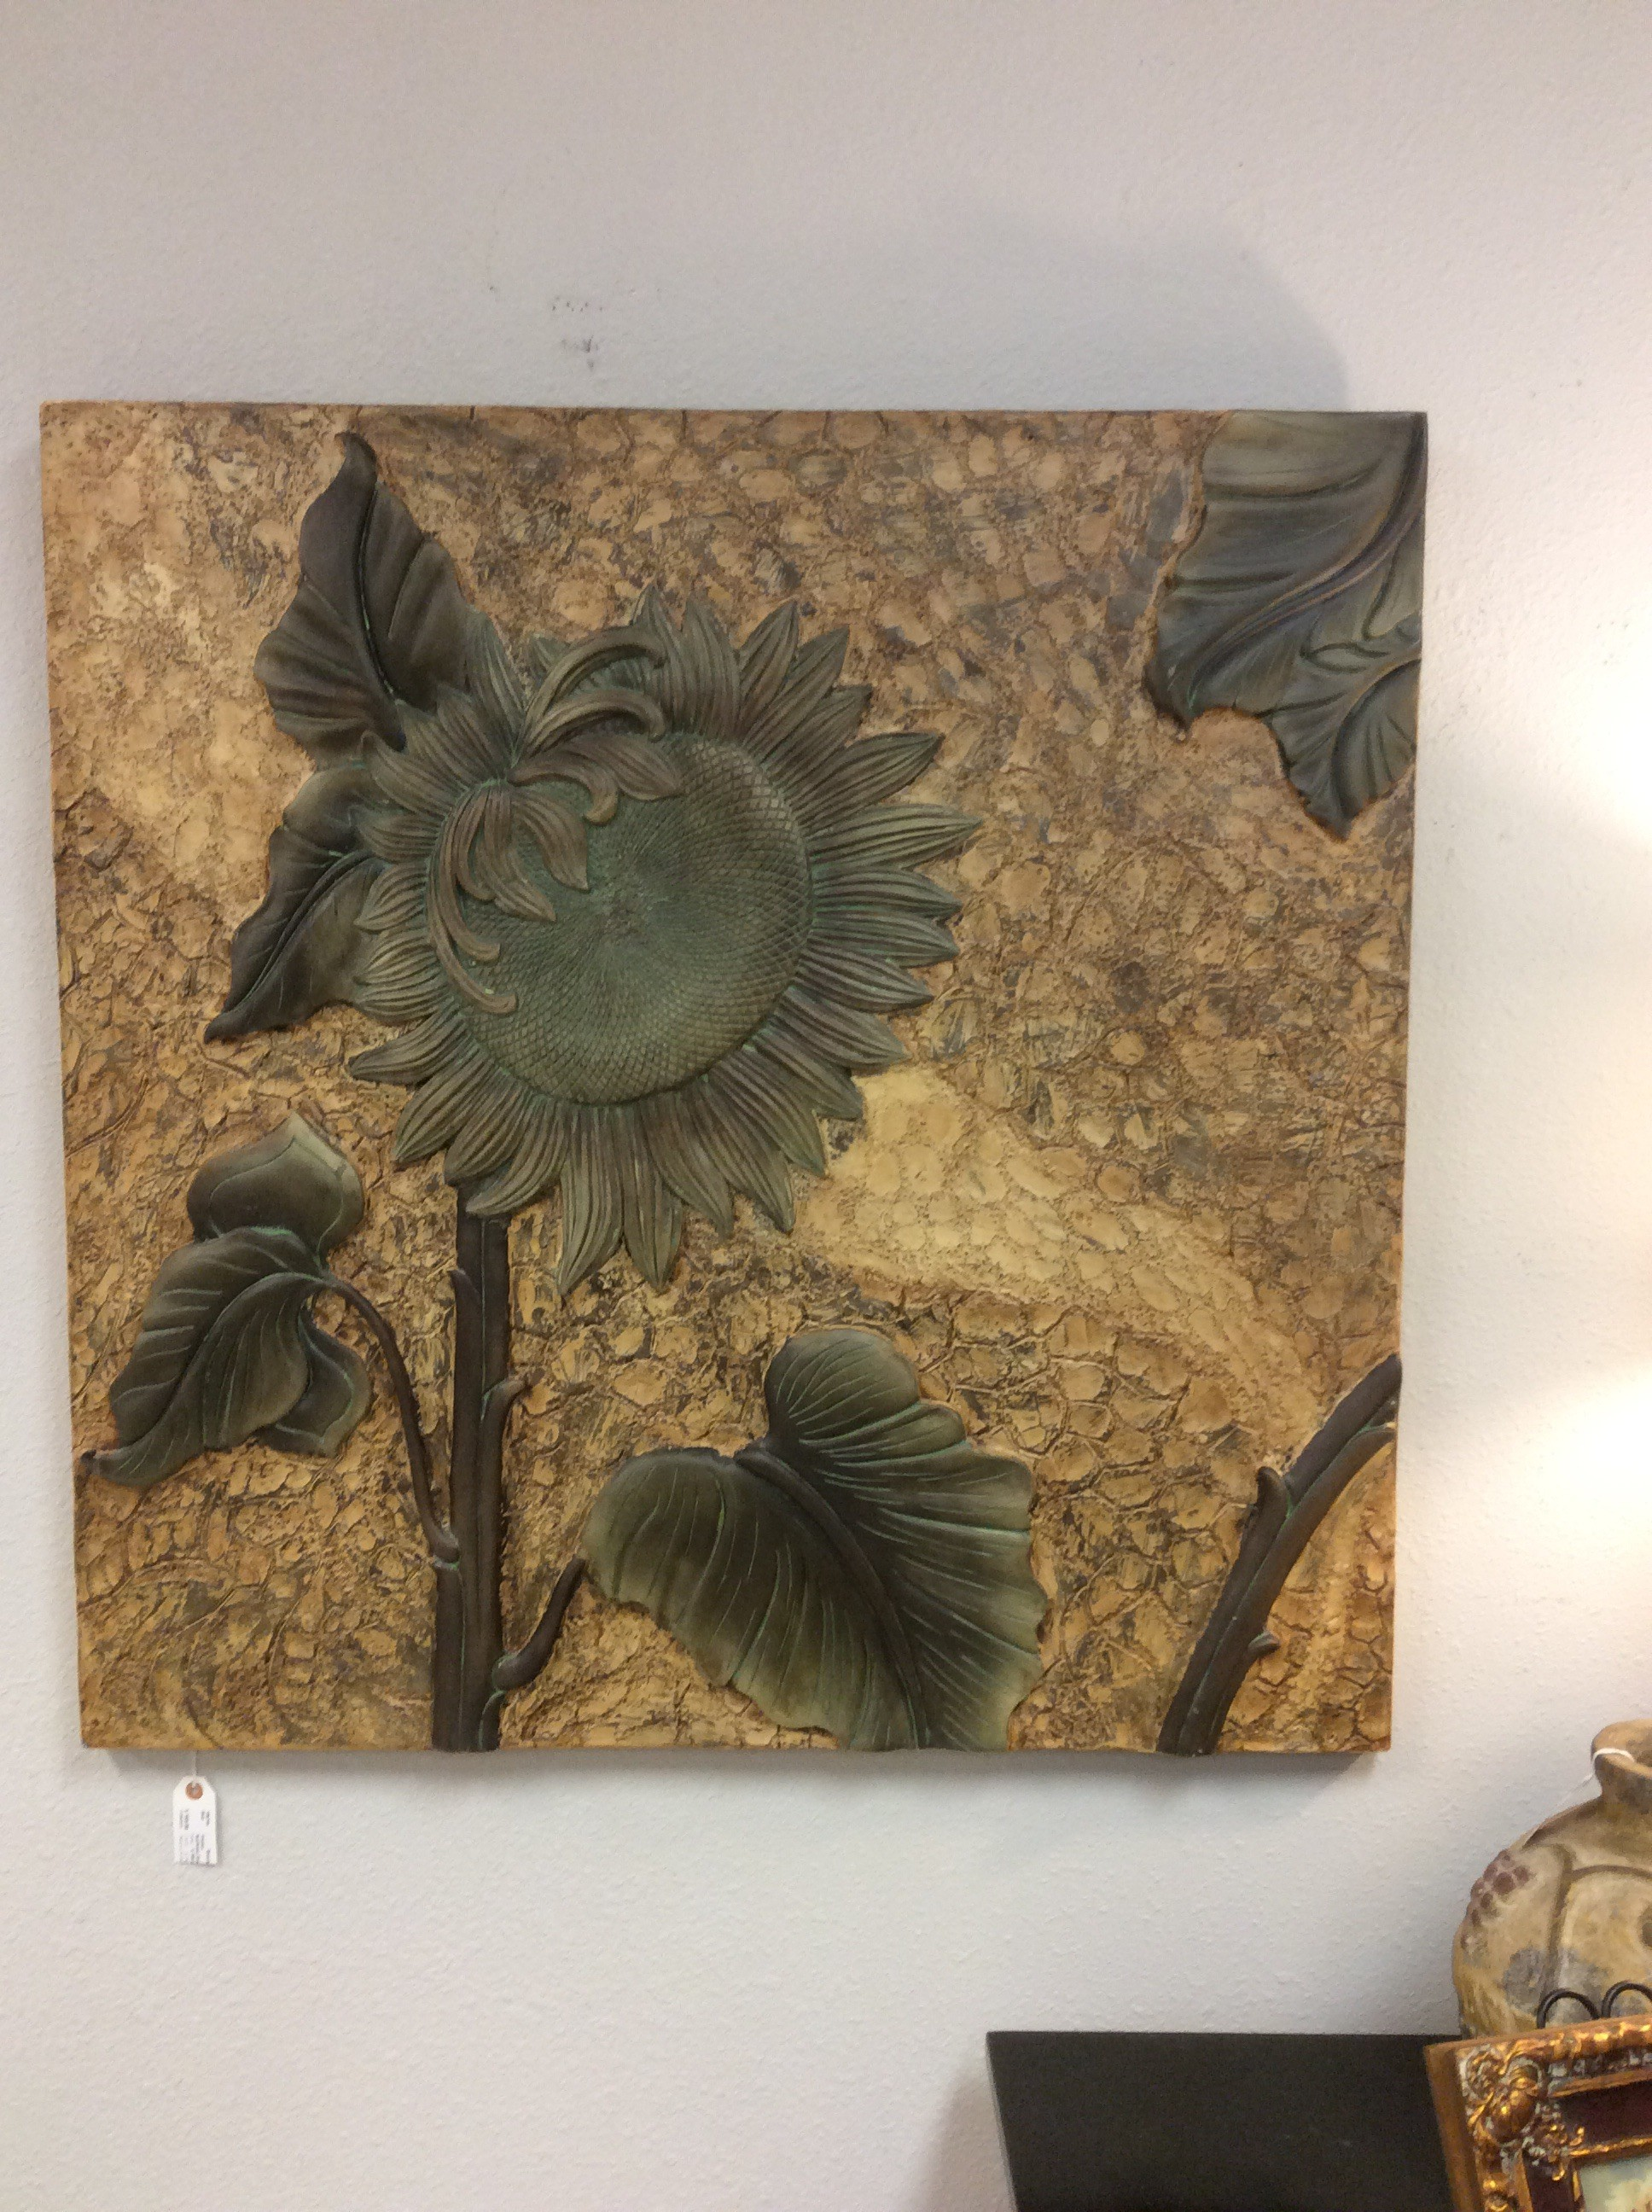 The larger-than-life sunflower which has been embossed gives you a 3 dimensional image. Wouldn't this be lovely in a Tuscan style home? The colors are earthy, really lovely.